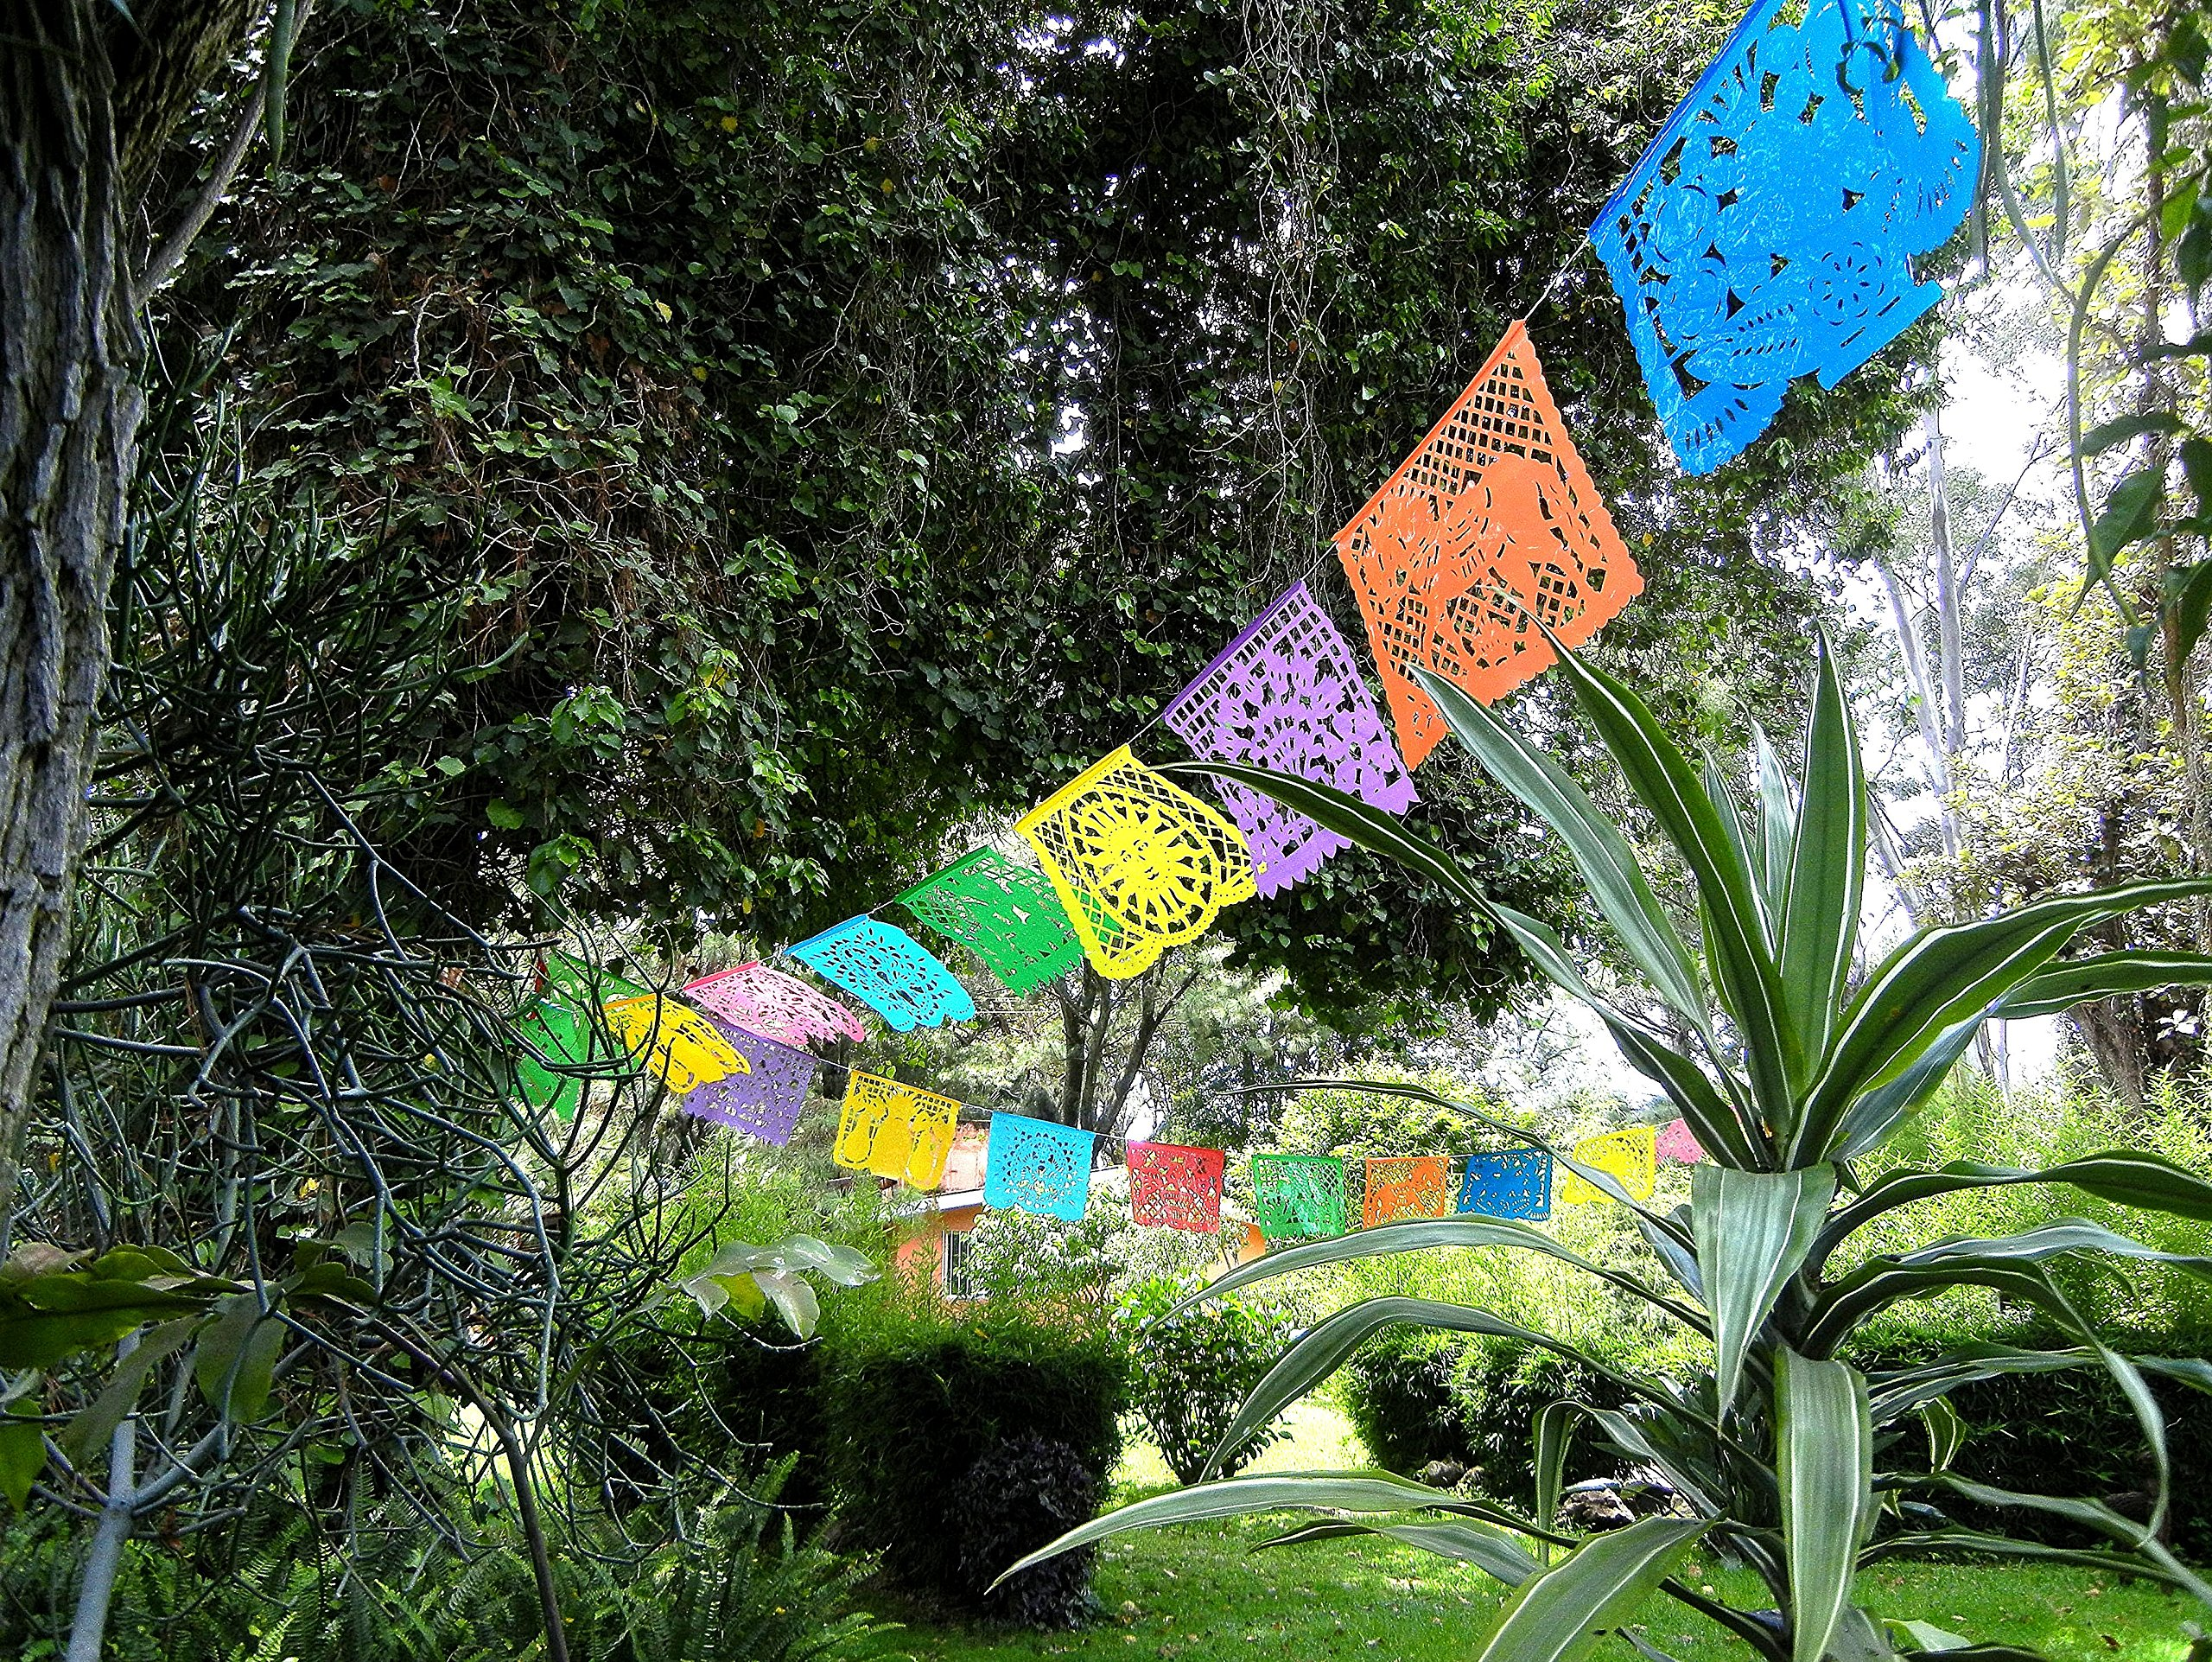 Mexican Decoration Papel Picado Plastic Banner Colorful Tissue Paper Coco Movie -Fiesta Party Birthday Family Celebrations- 64 Feet Includes 4 Large Banners (16 Feet Long 10 Panels each)- Handmade by IREKUA